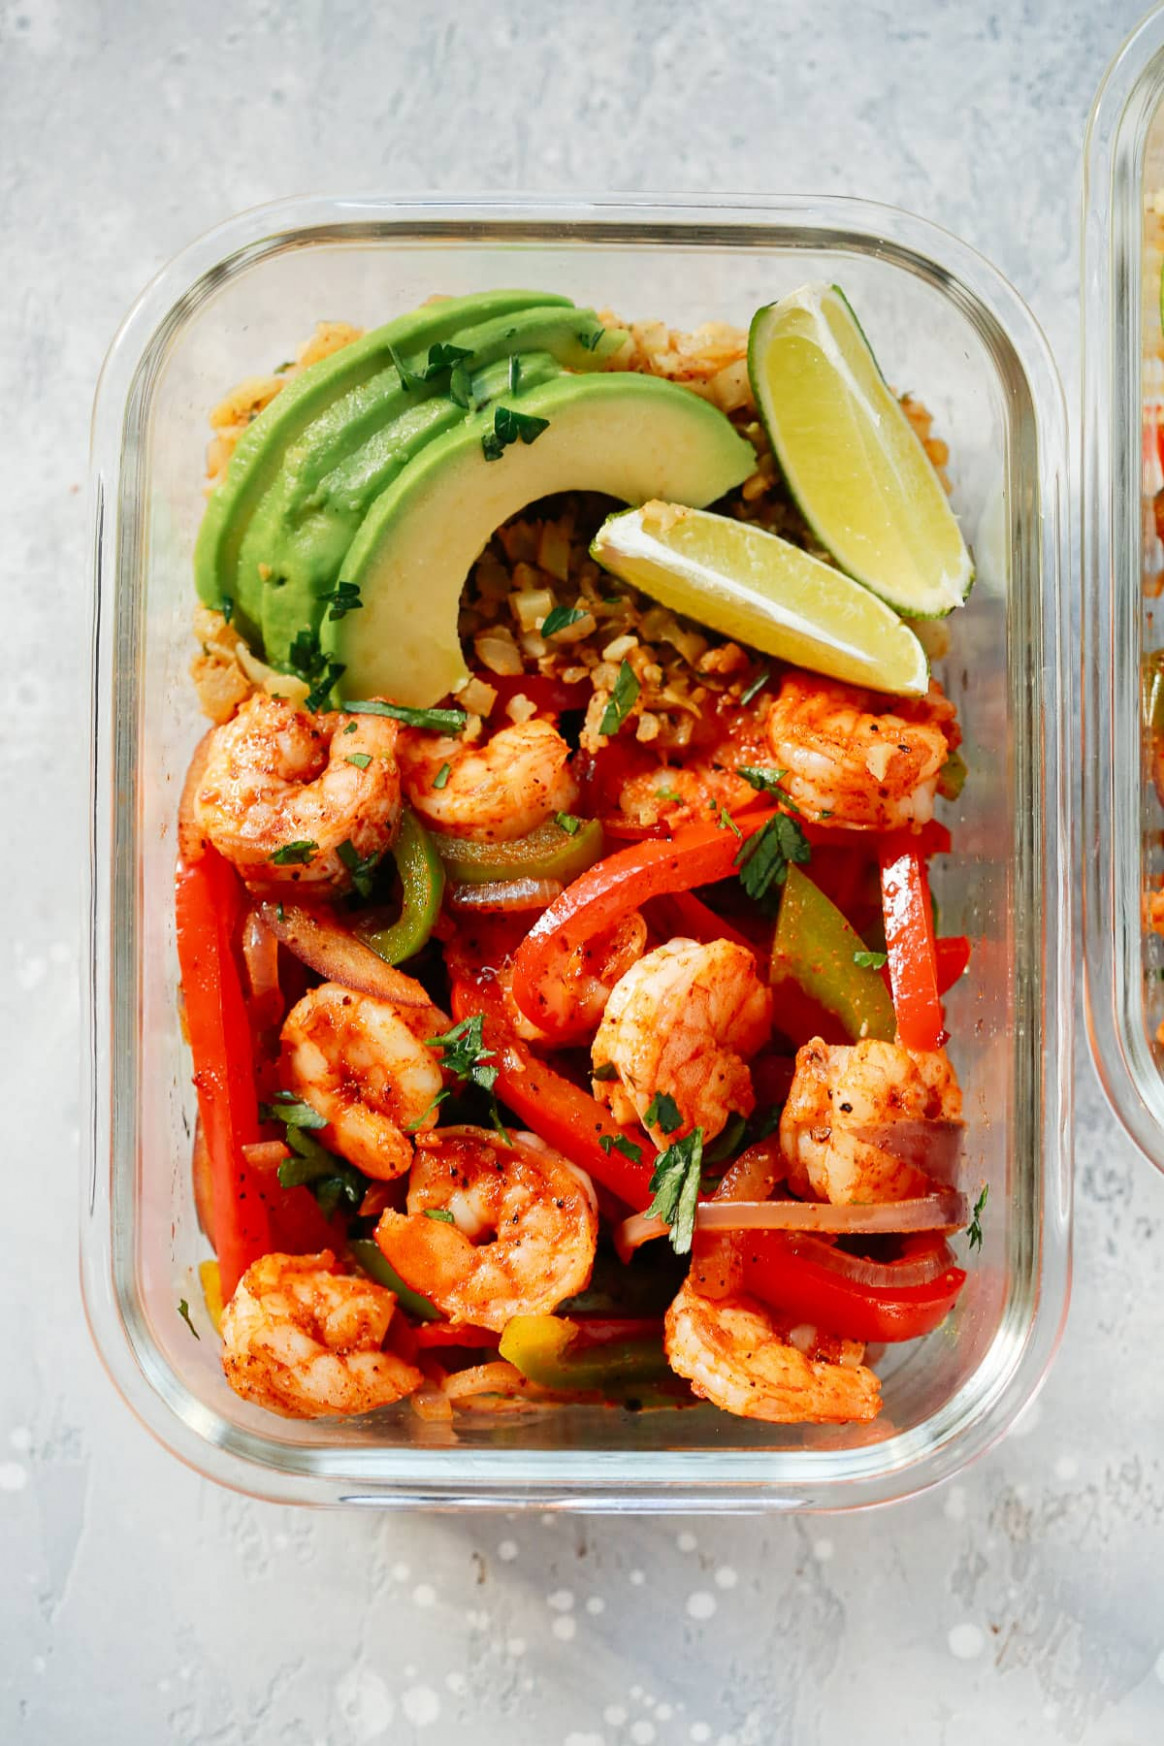 Low-carb Shrimp Fajita Meal-Prep Bowls - food recipes low in potassium